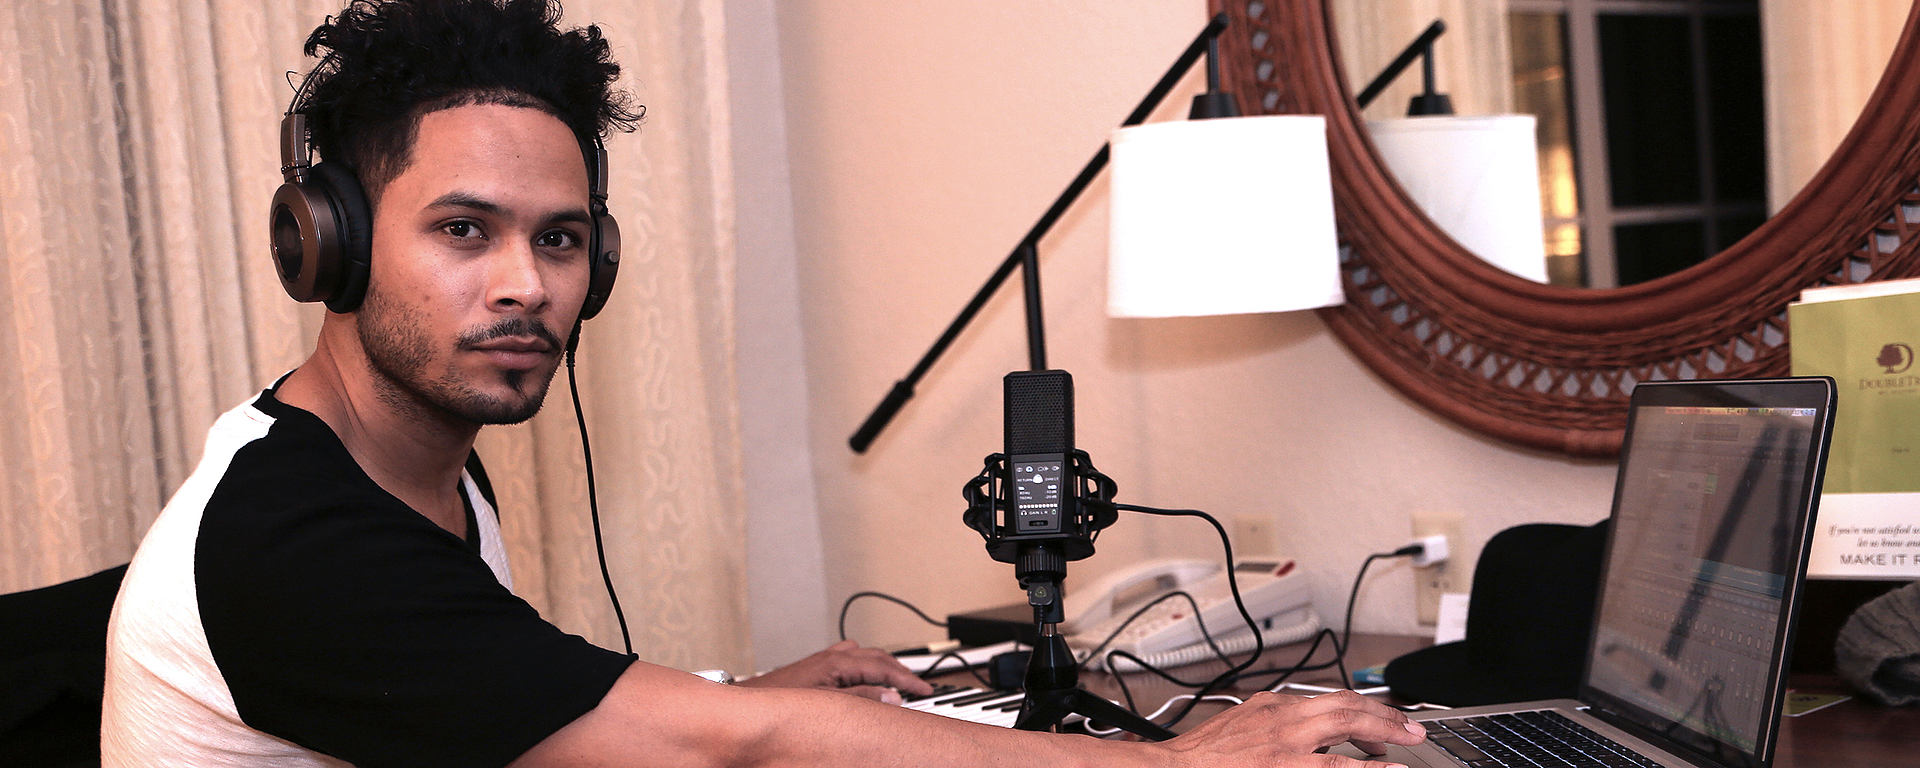 This image shows Steve Styles in his hotel Room using the DGT 650 USB microphone and interface